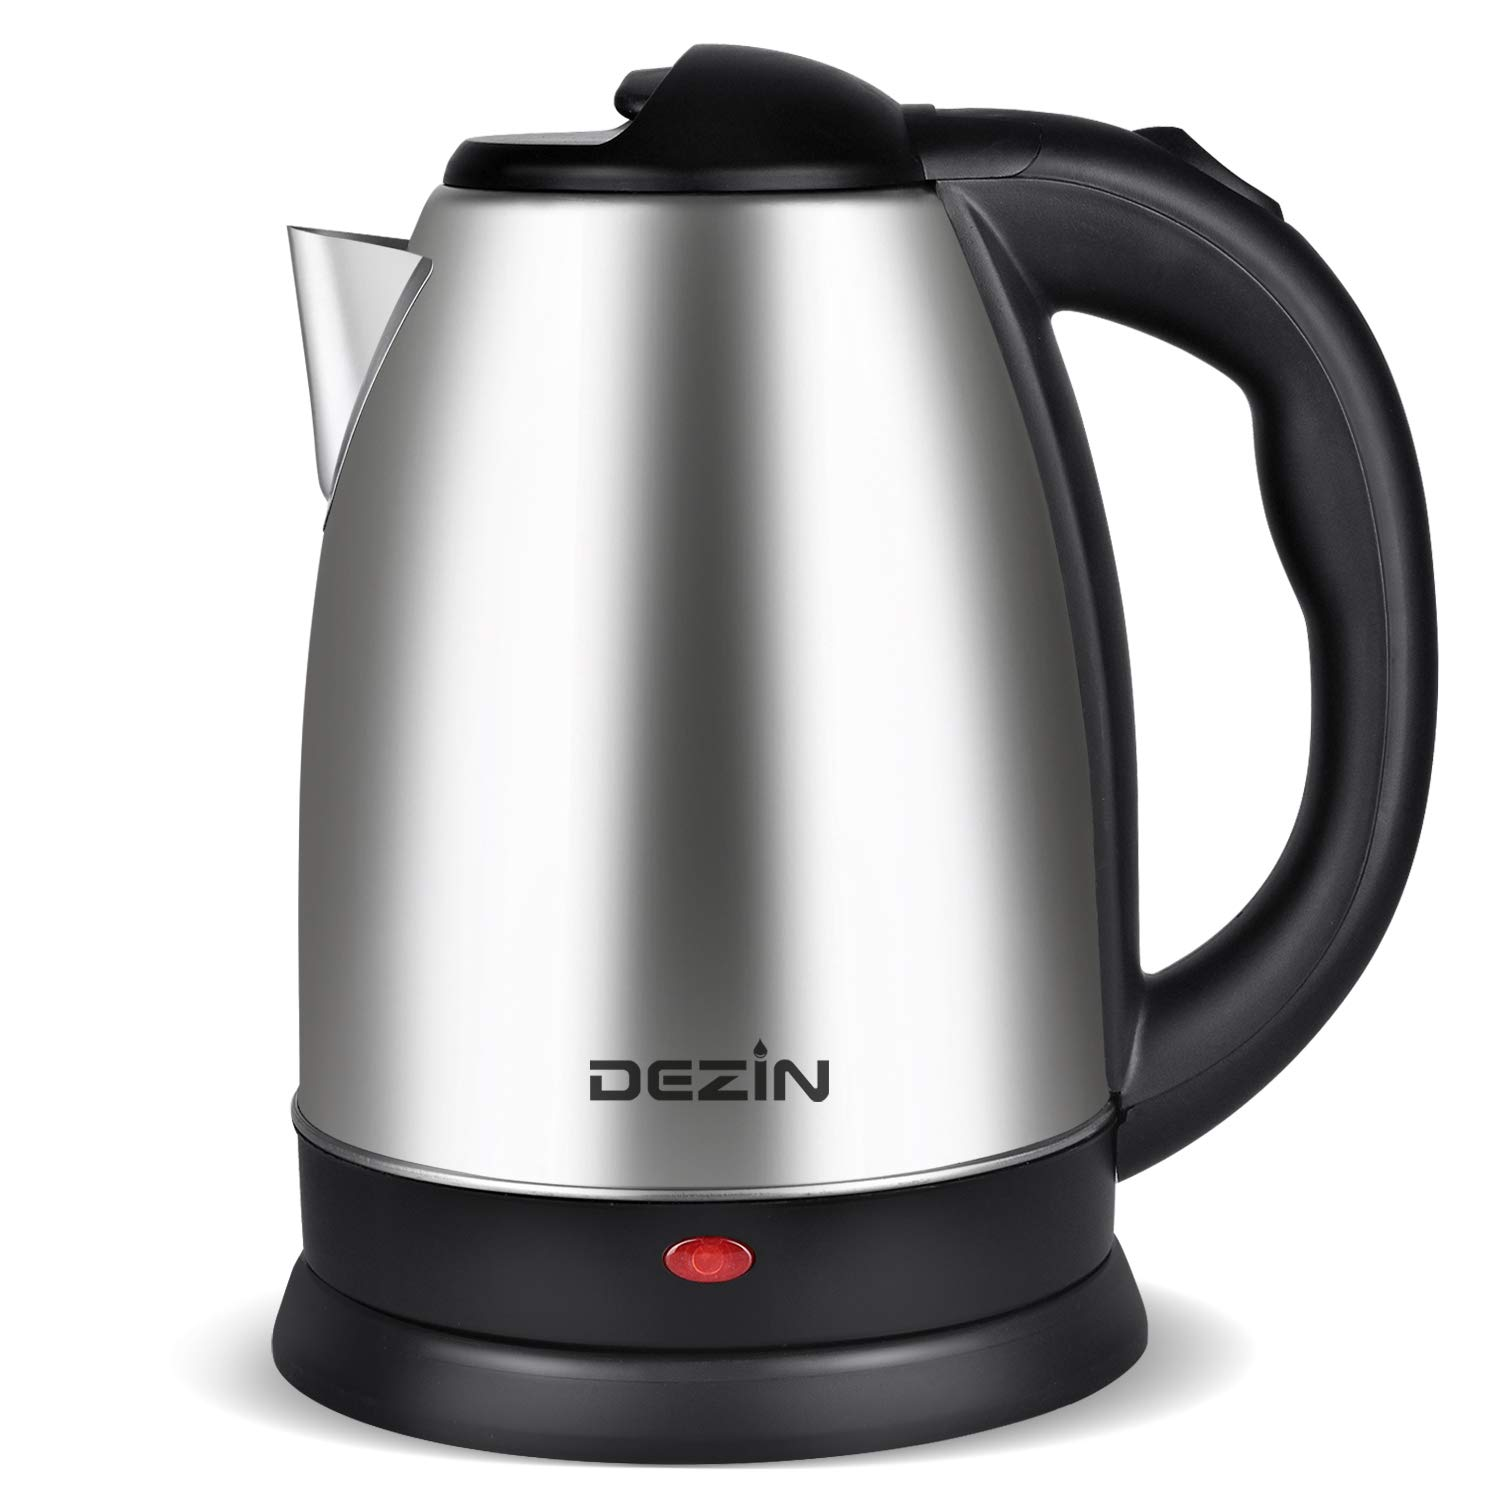 Dezin Electric Kettle Water Heater Upgraded, 2L Stainless Steel Cordless Tea Kettle Boiler, Fast Boil Water Warmer with Auto Shut Off and Boil Dry Protection Tech for Coffee, Tea, Beverages by DEZIN